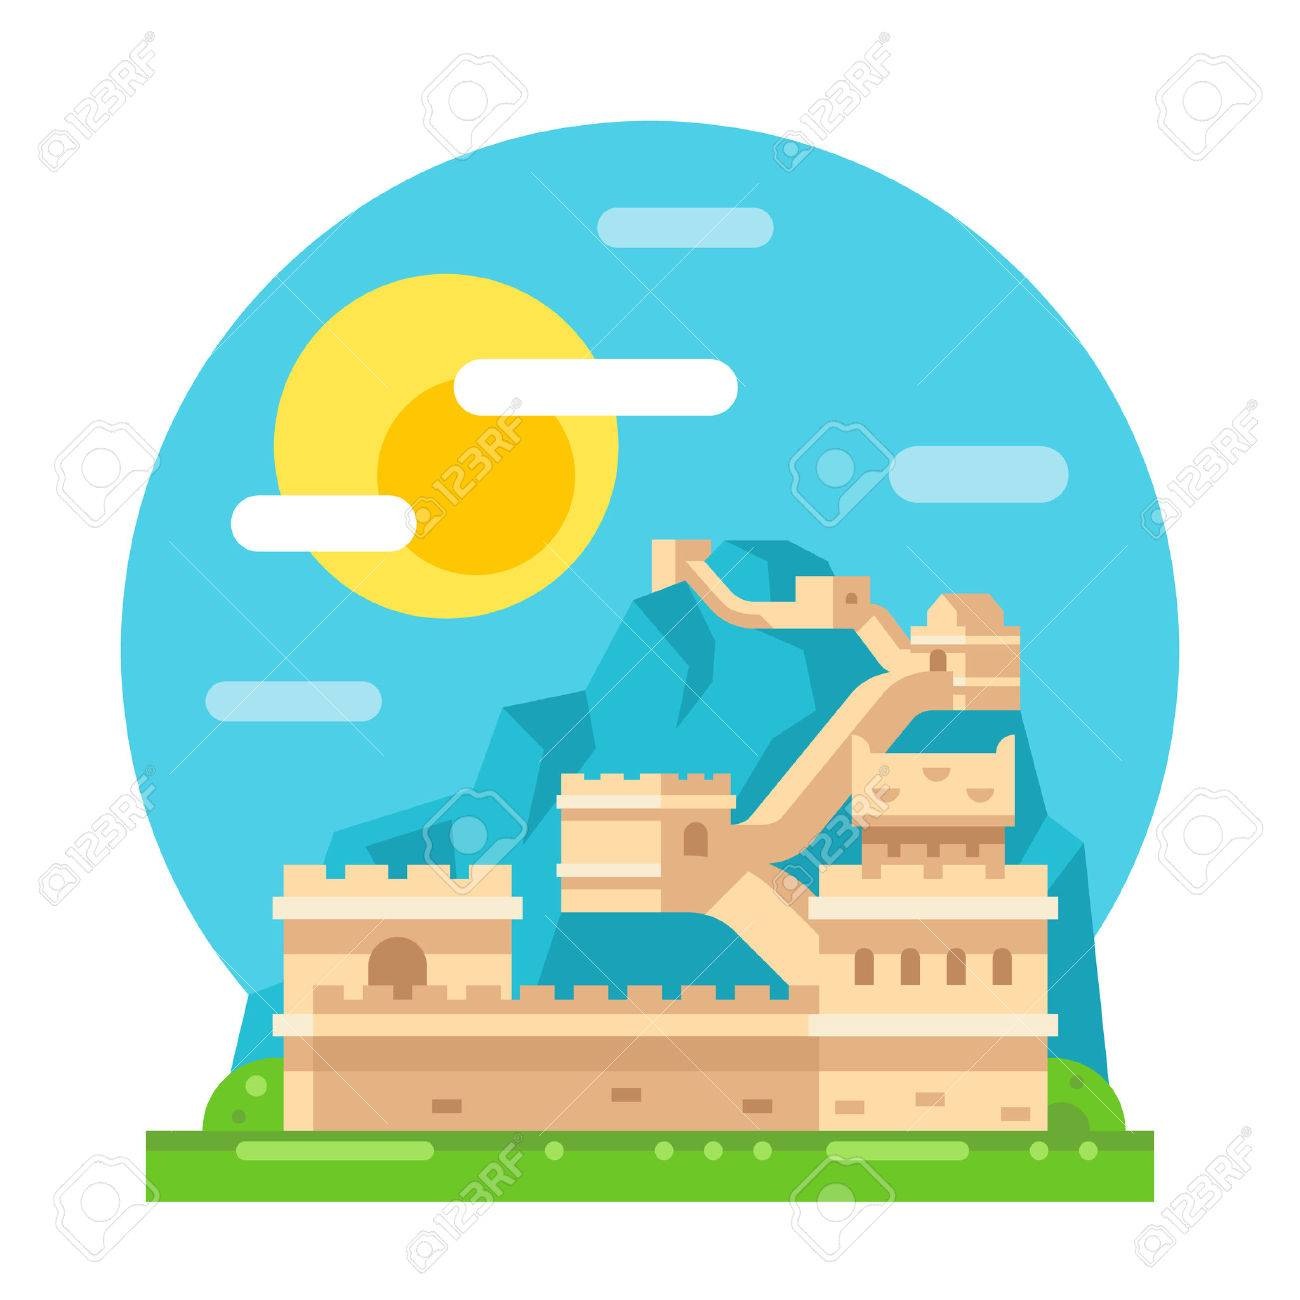 Great wall of China flat design illustration vector Stock Vector - 45160836  sc 1 st  123RF.com & Great Wall Of China Flat Design Illustration Vector Royalty Free ...